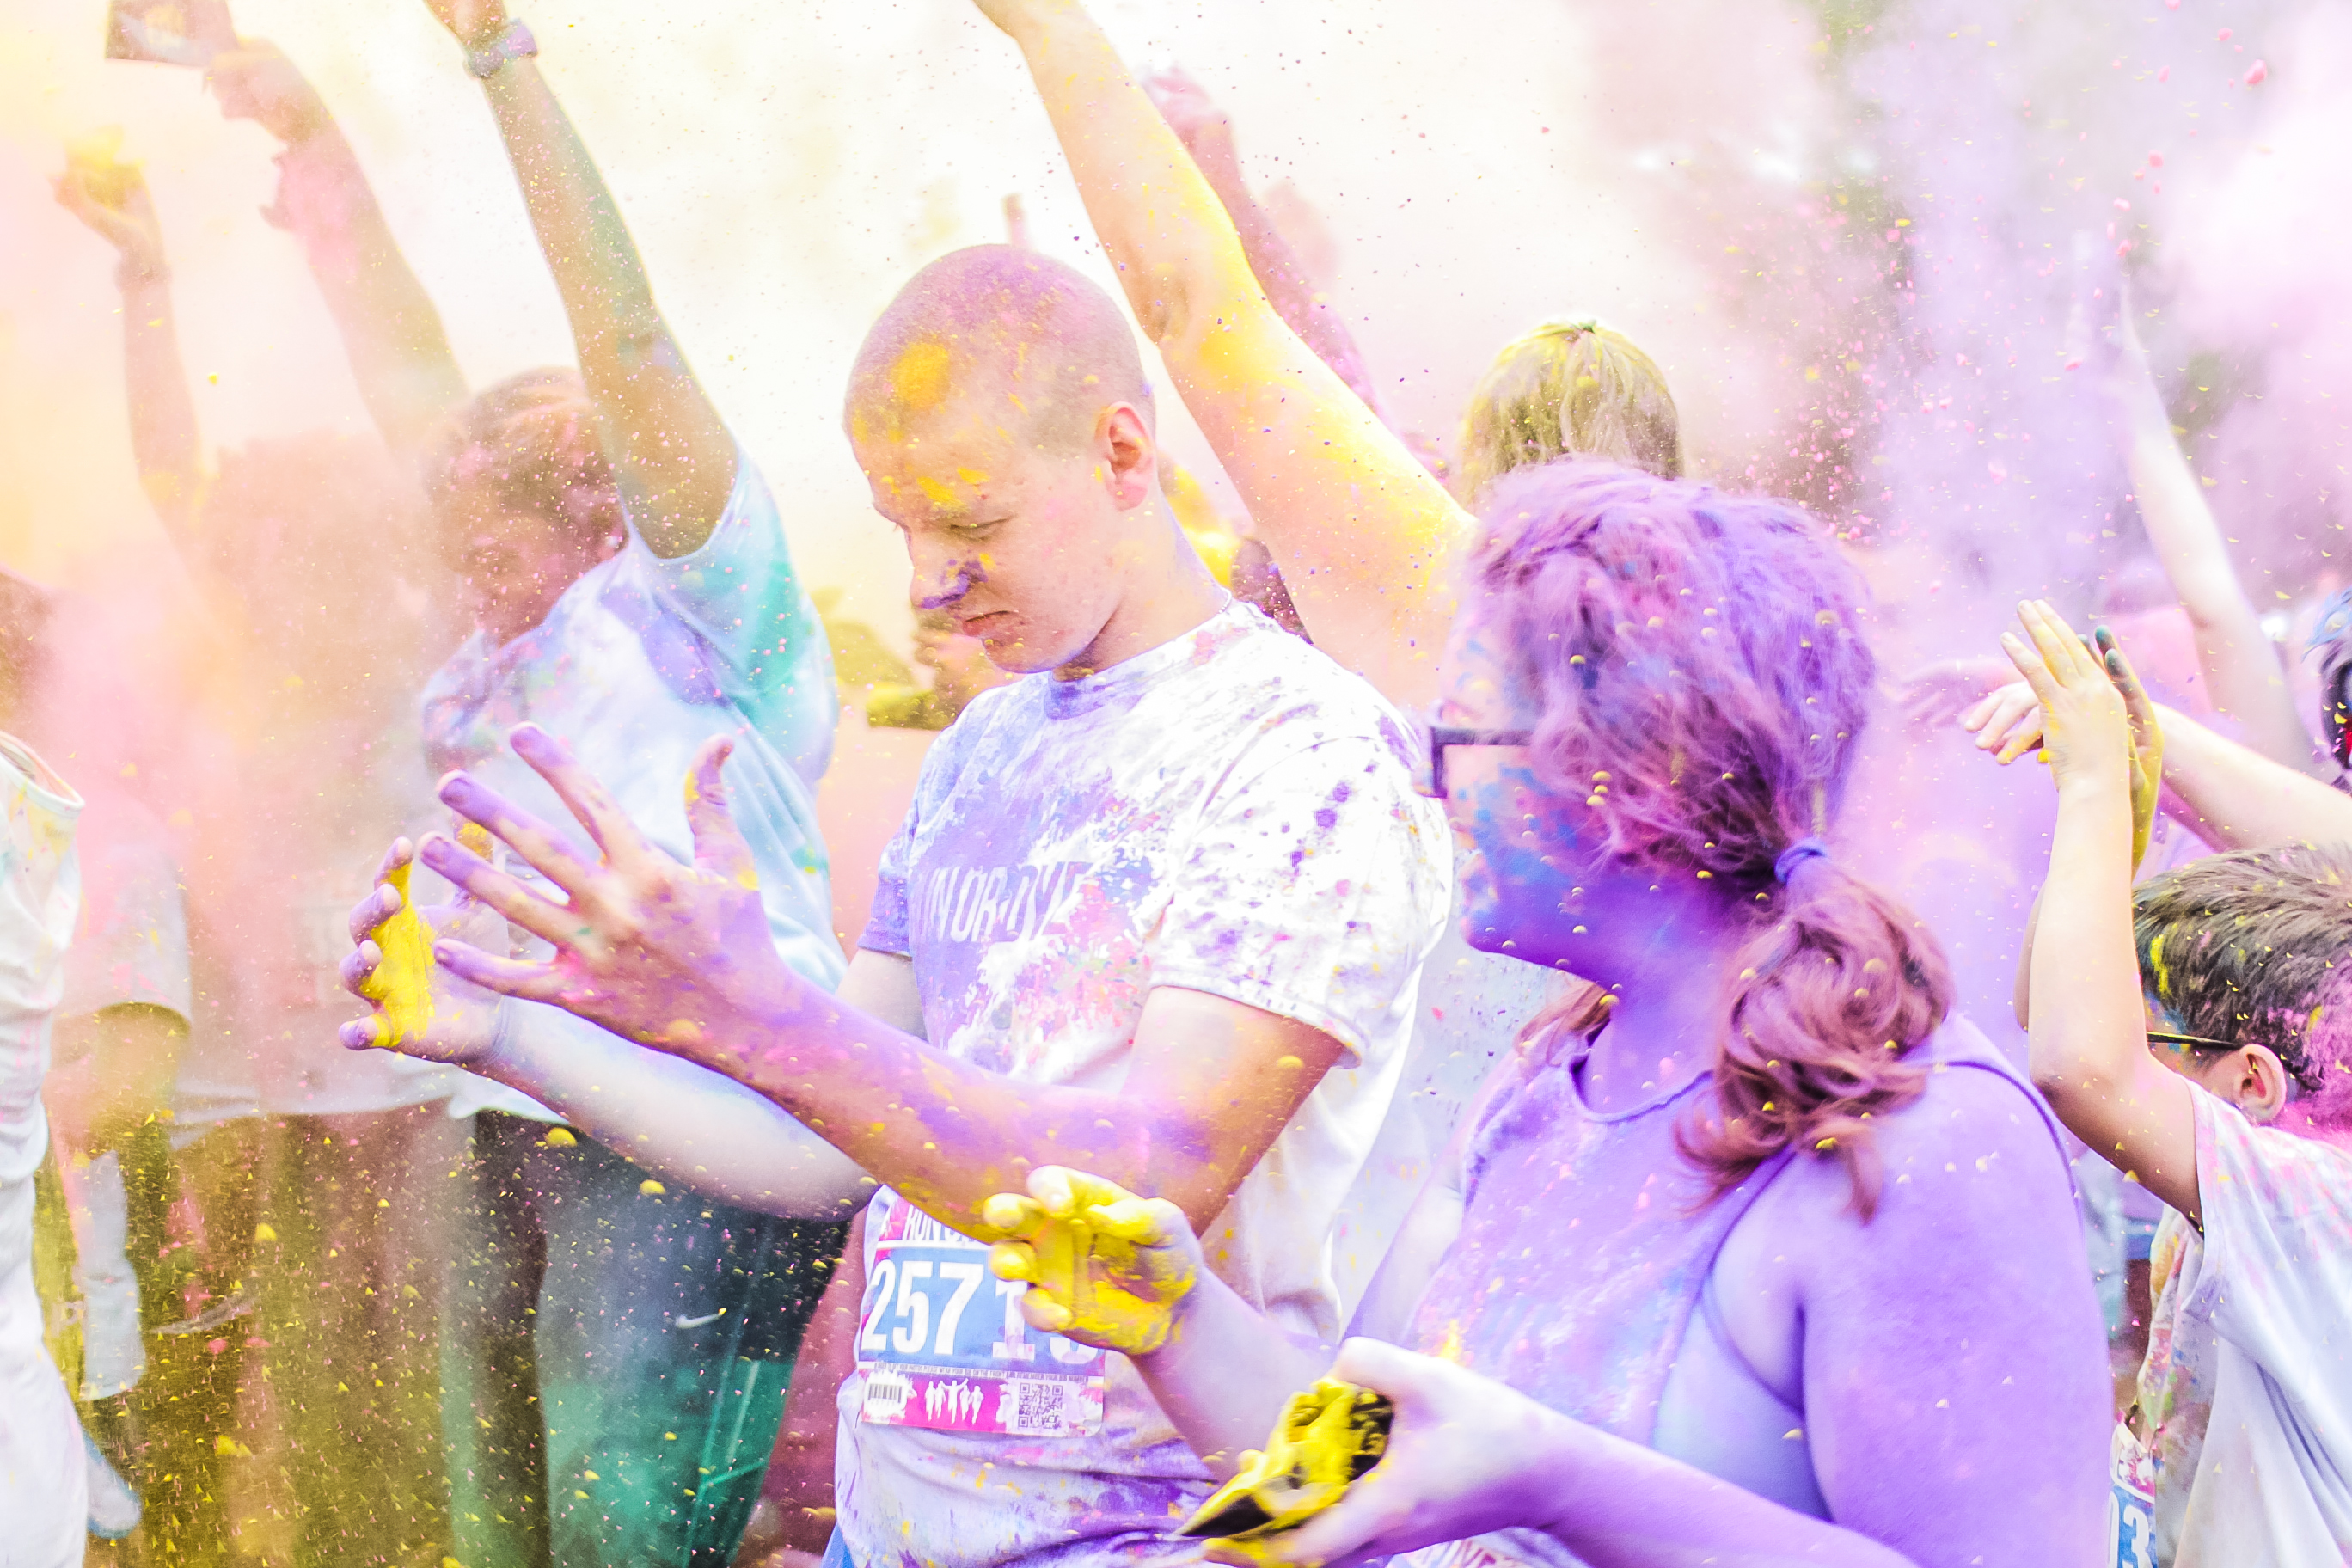 omb-photography-run-or-dye-219